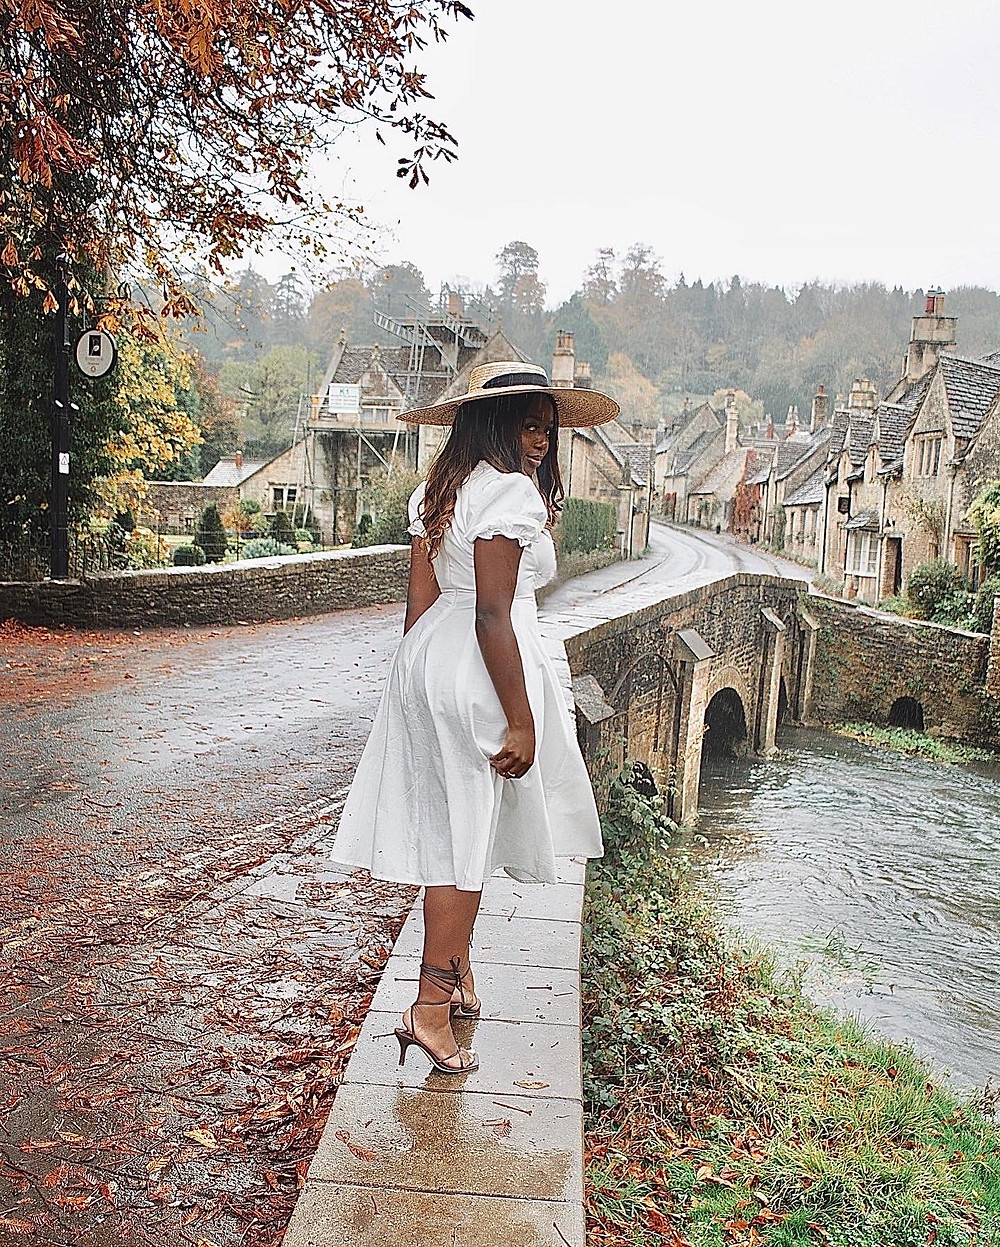 Castle Combe - Cotswold Travel Guide UK